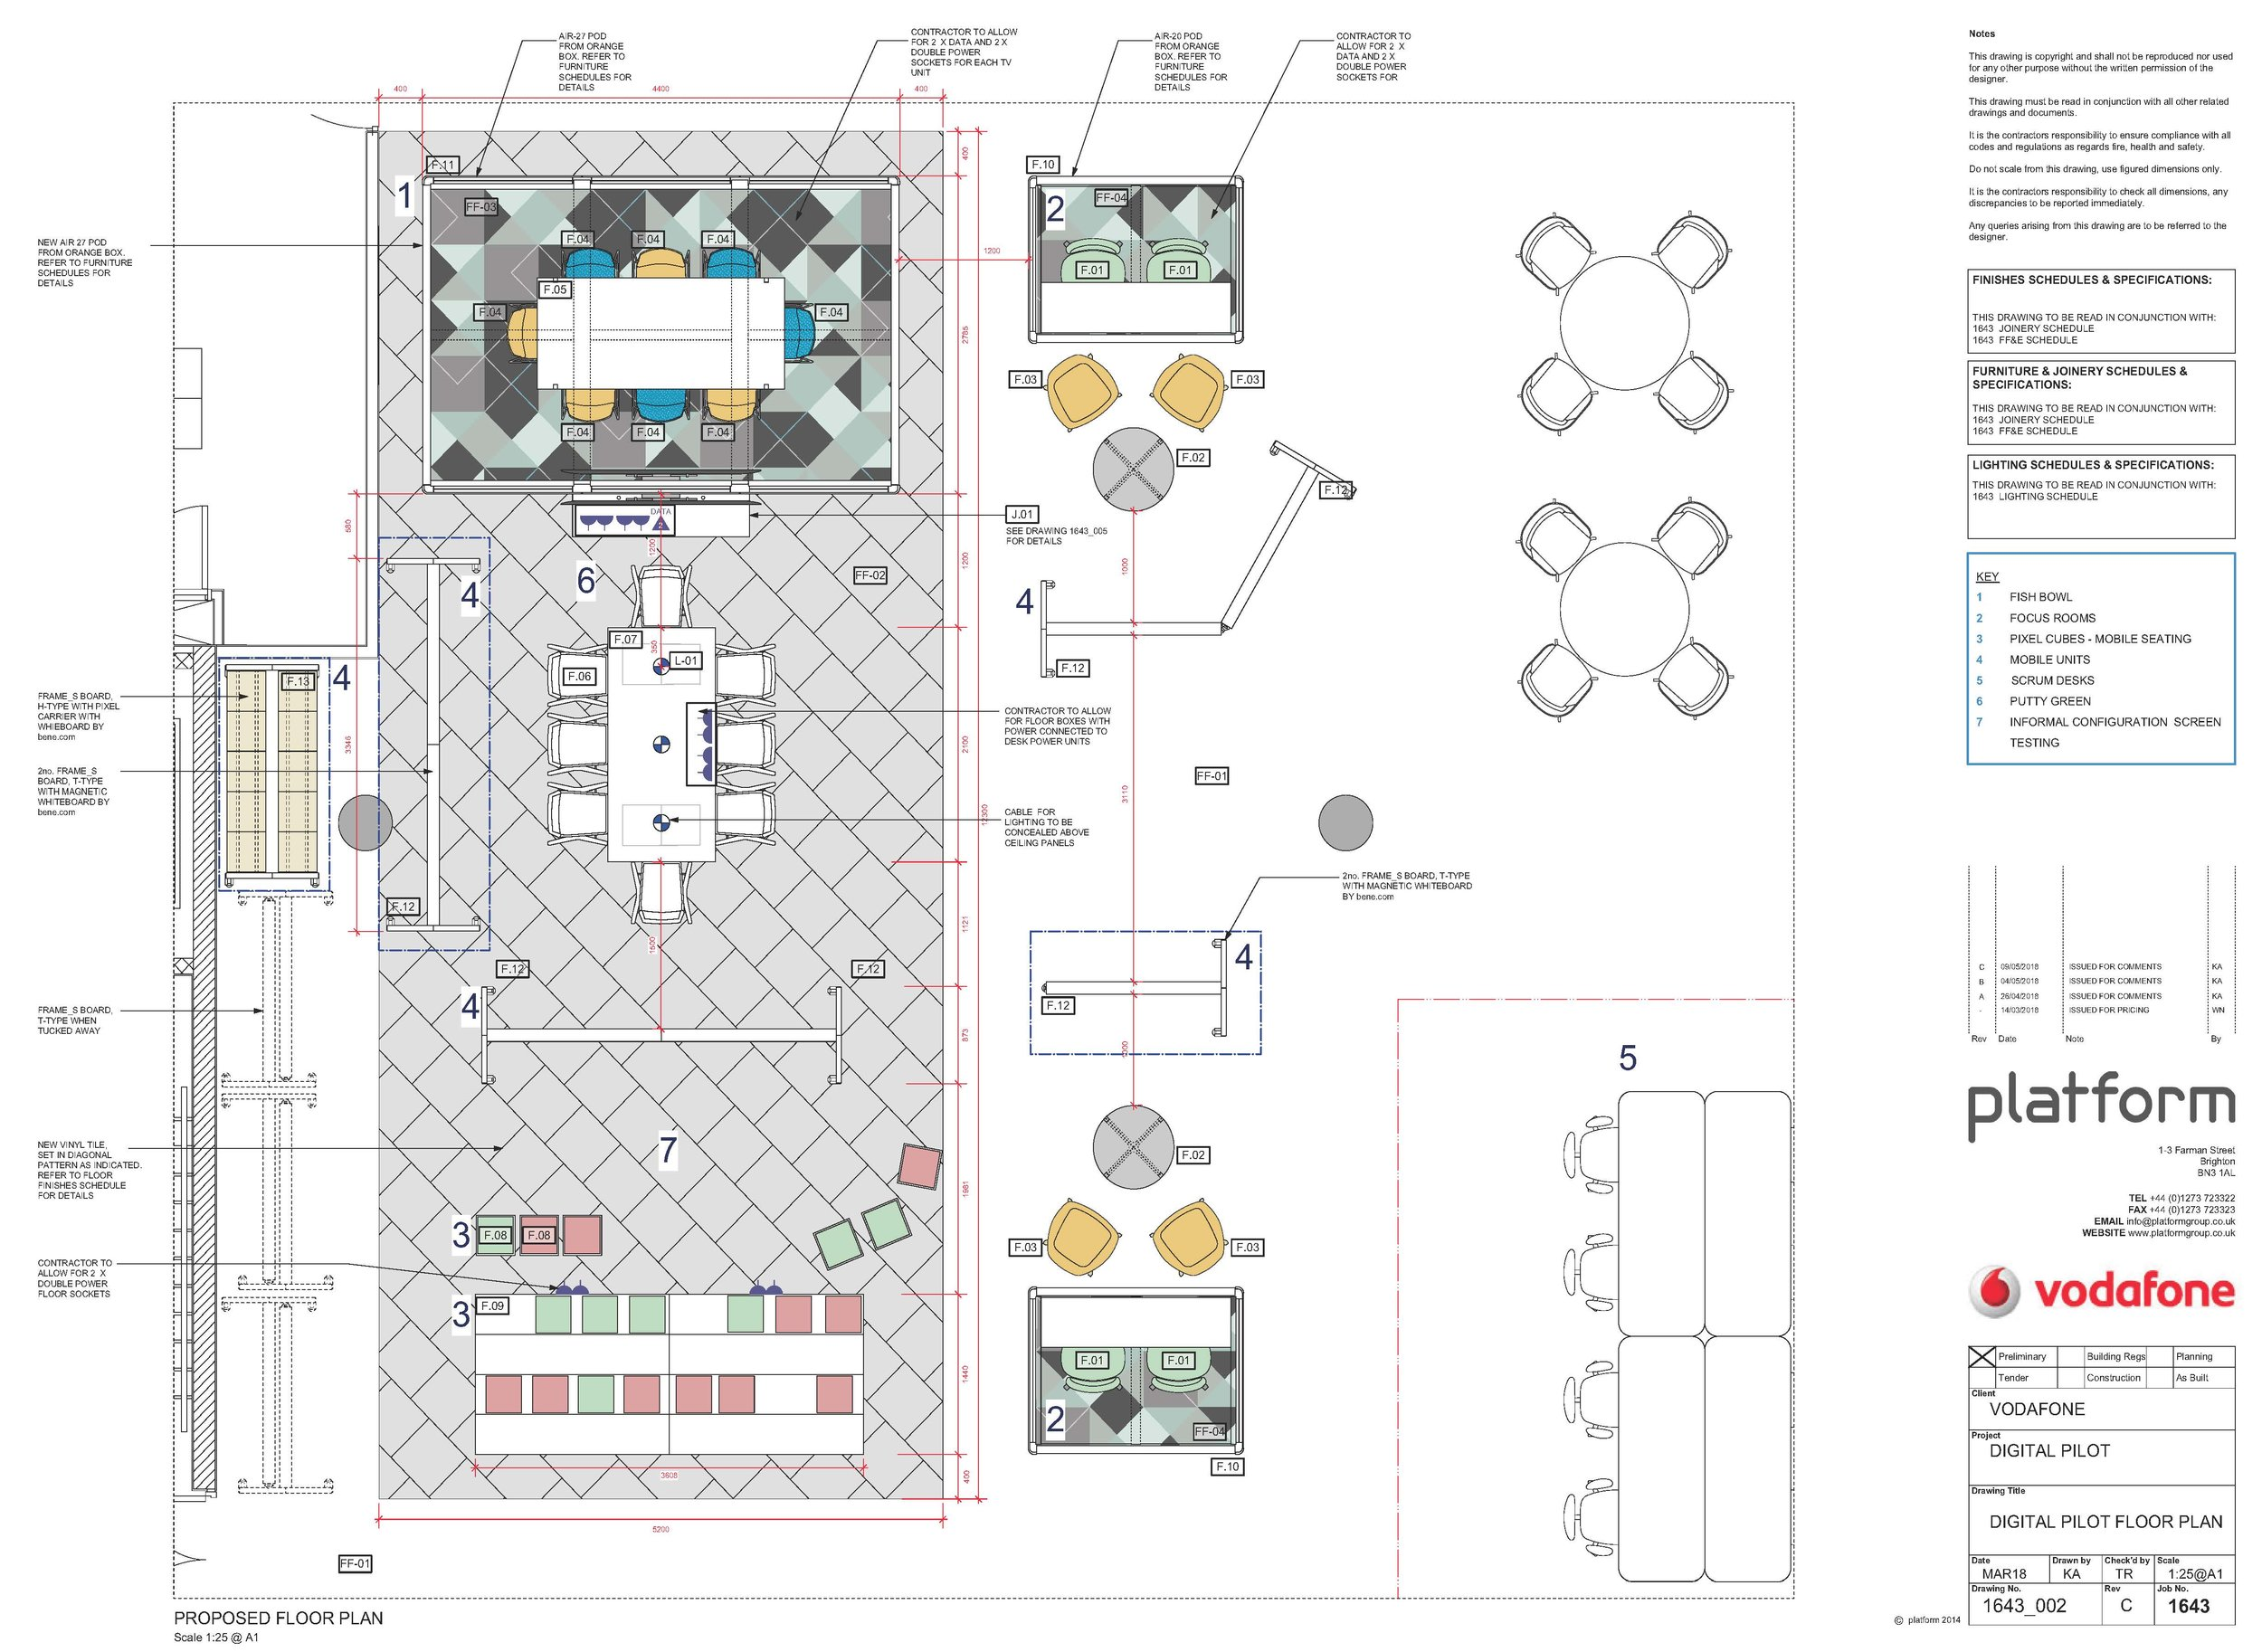 1643_002C Digital Pilot Floor Plan.jpg